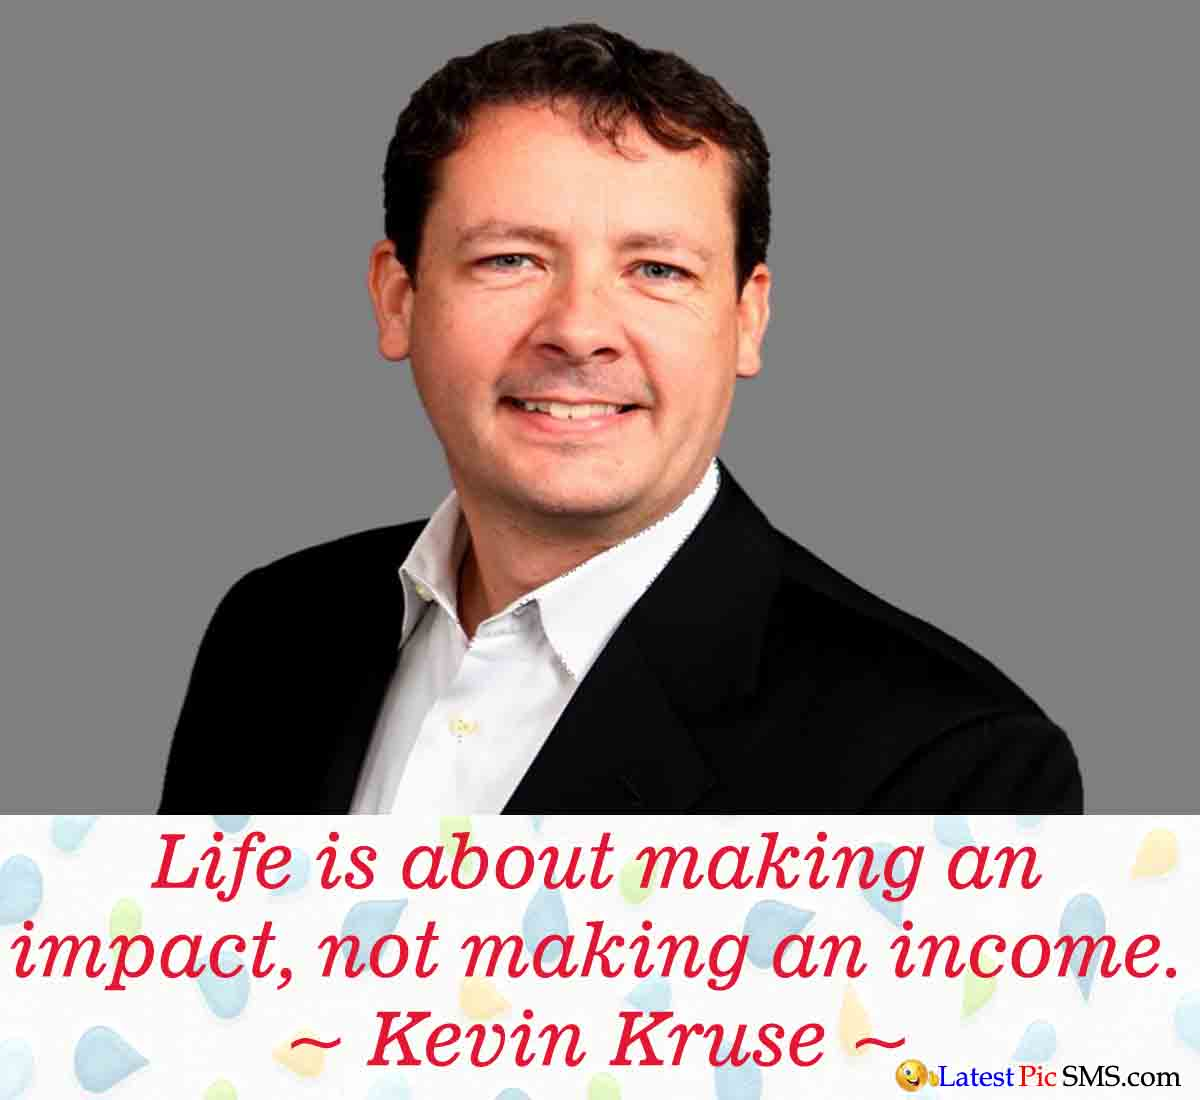 Kevin Kruse Life Quote